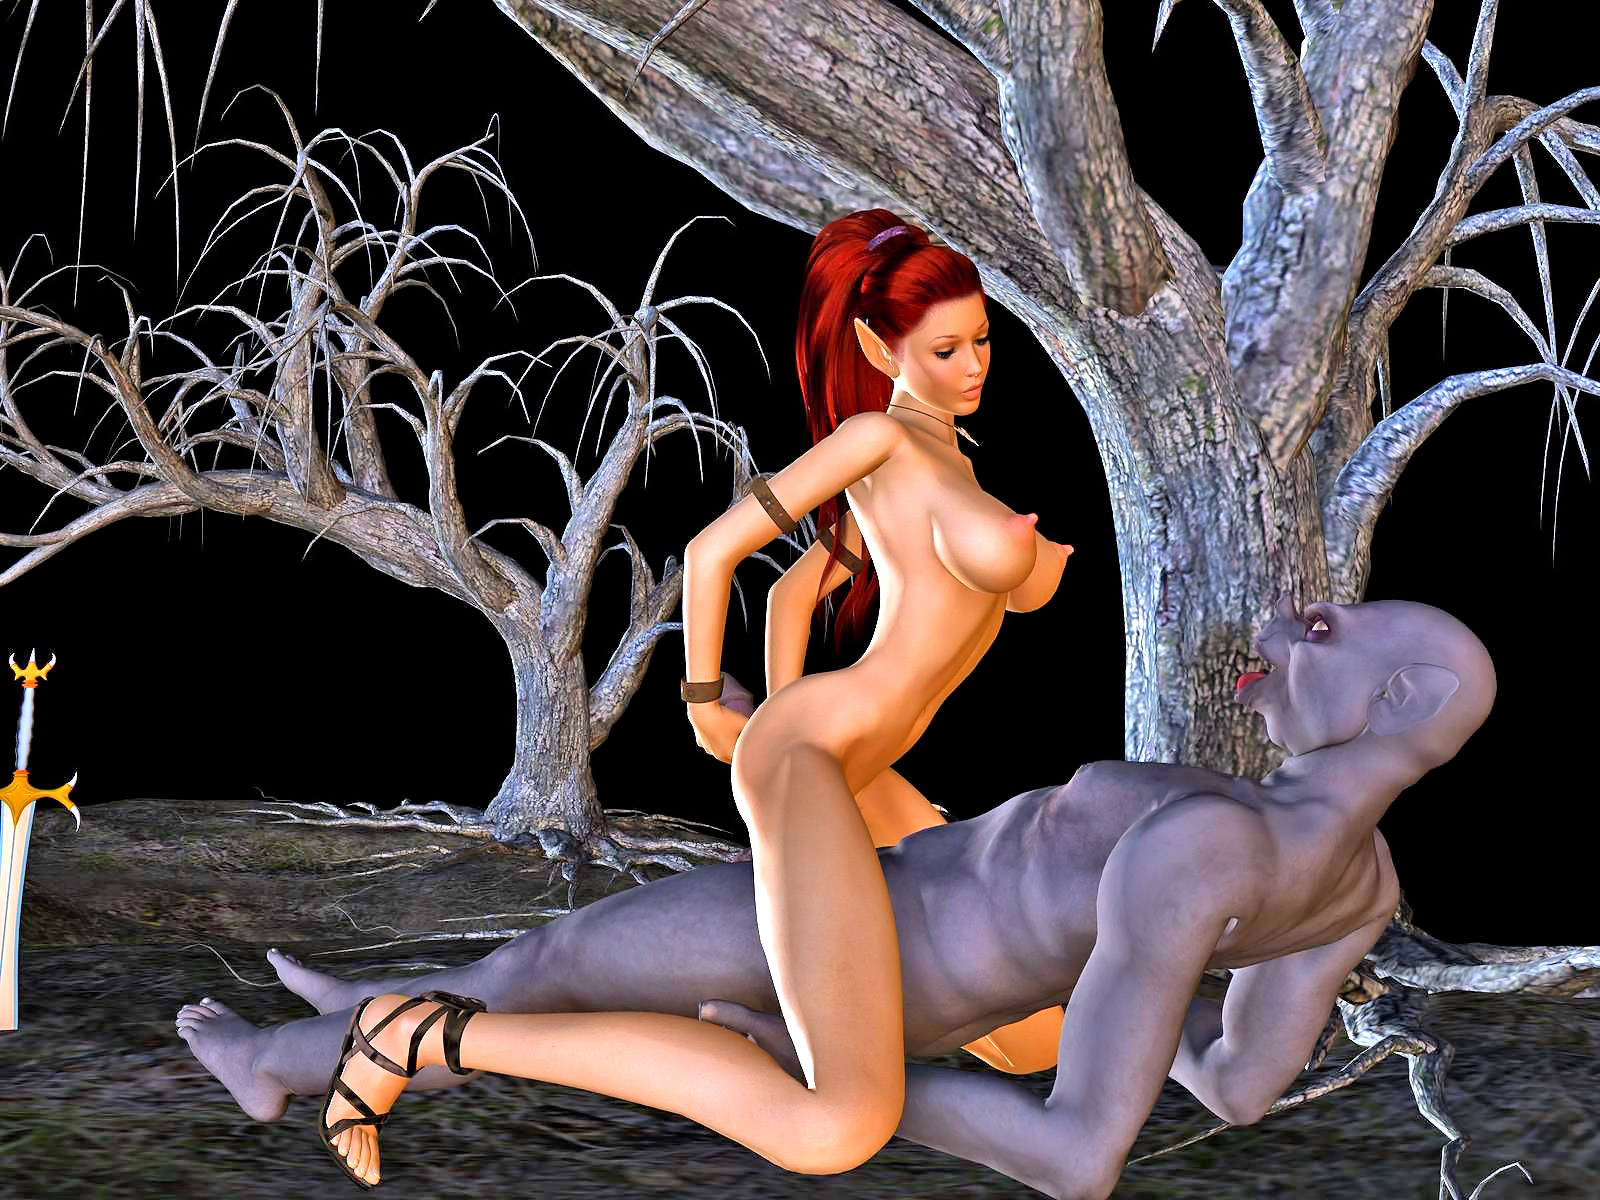 Anime warrior girl 3d hentai cartoon pic